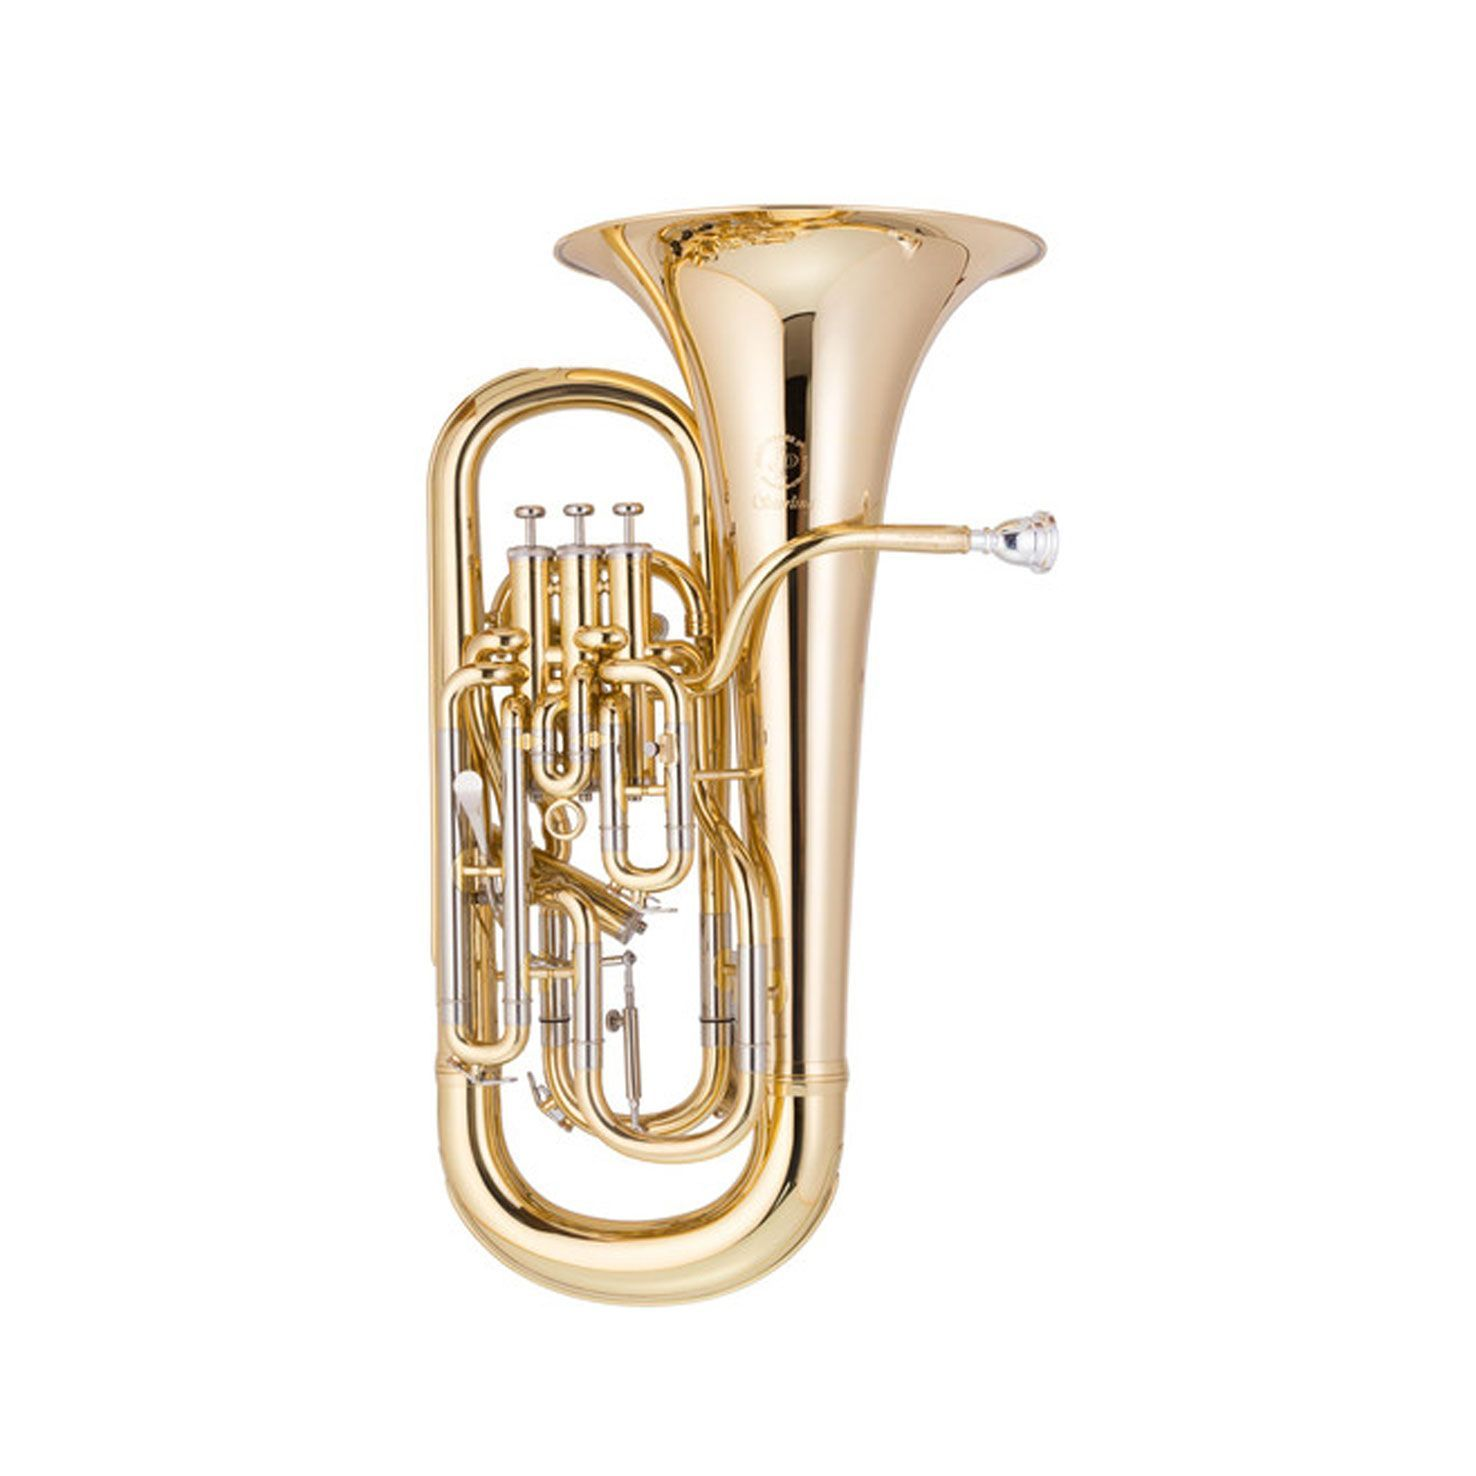 JP374 Stirling T Euphonium - JP Stirling with trigger